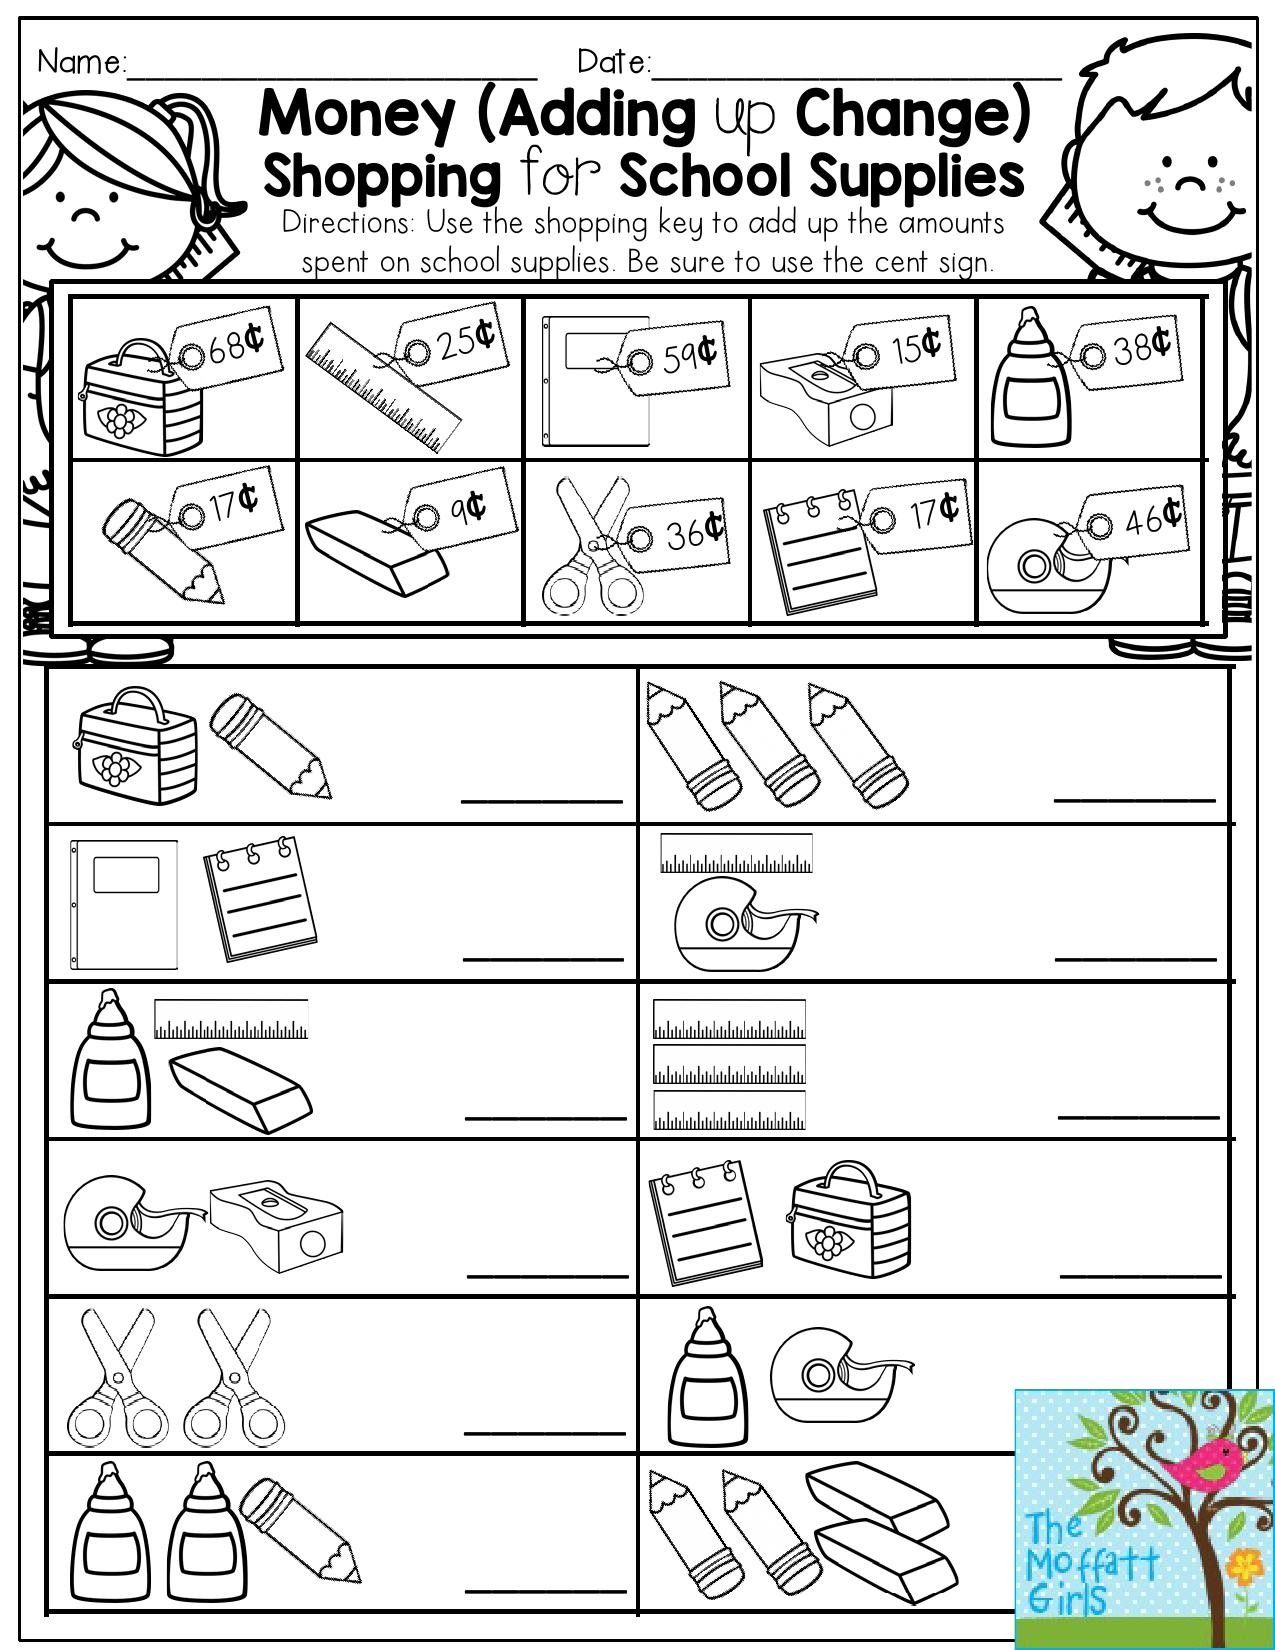 Counting Money Printable Worksheets Money Adding Up Change